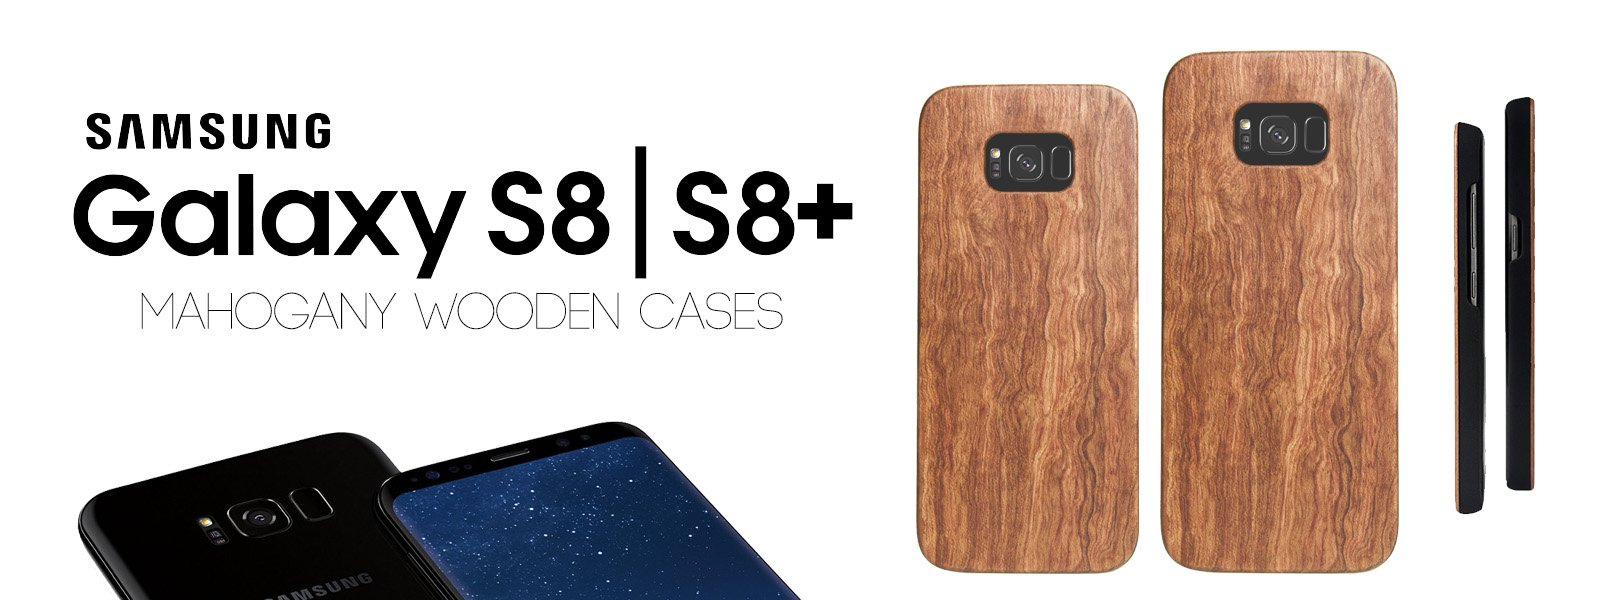 Mahogany Wood Galaxy S8 Cover S8 Galaxy S8 Wallpaper